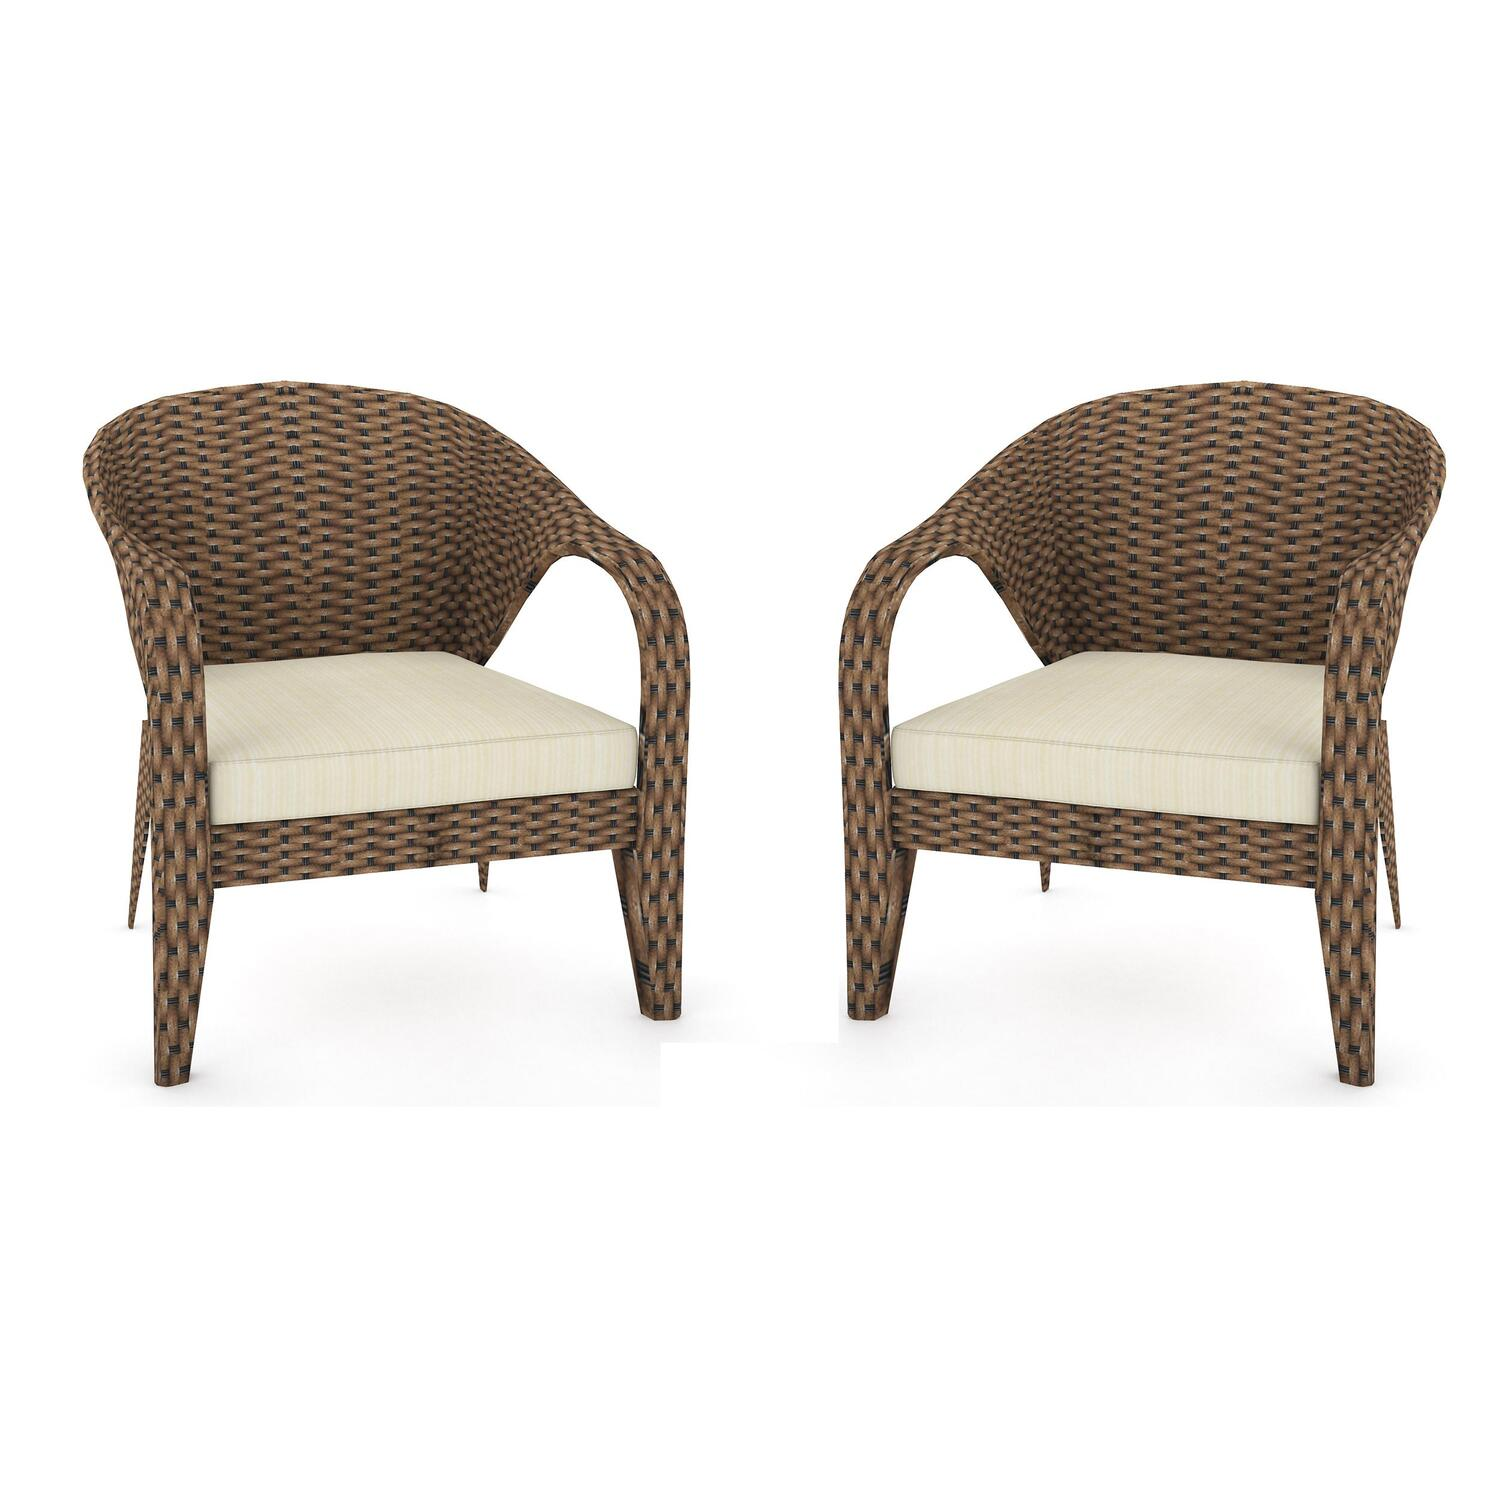 Harrison patio chairs ojcommerce for Terrace chairs